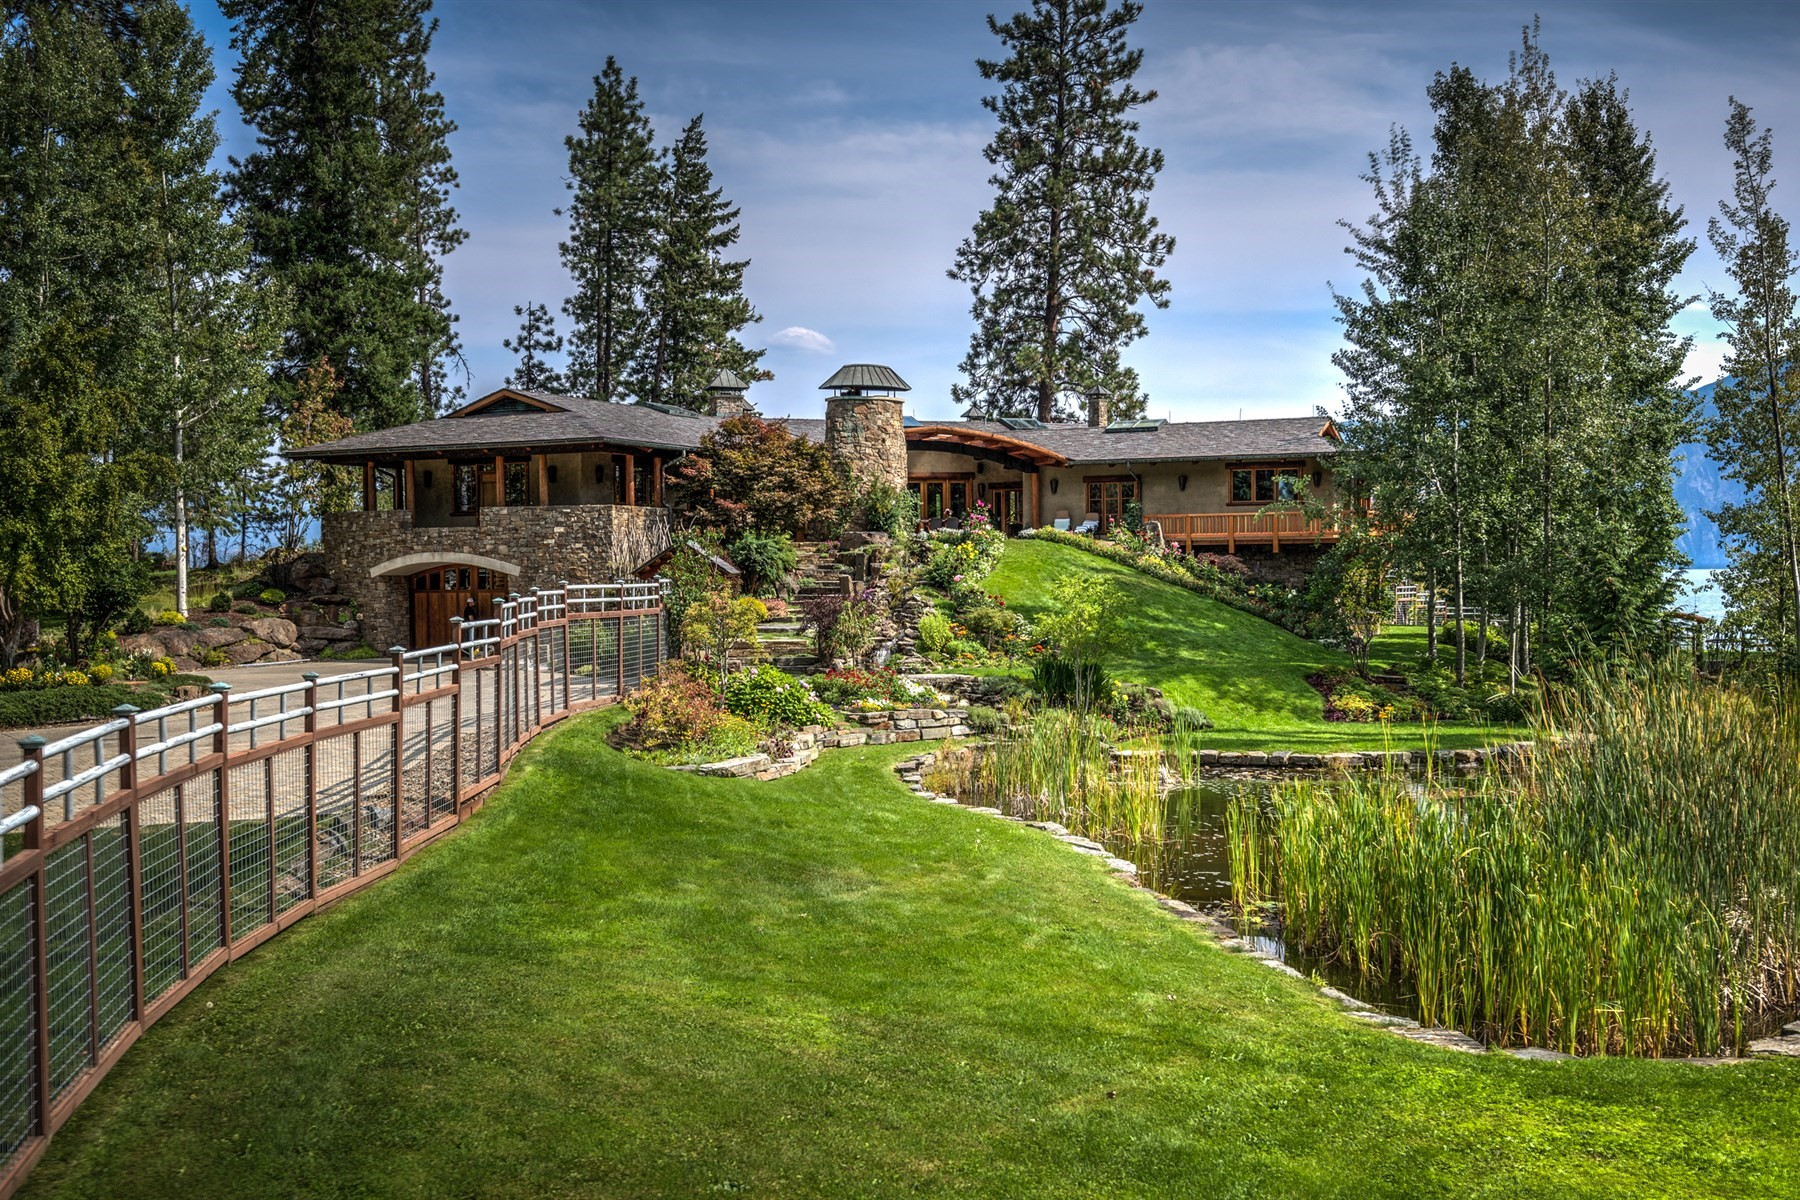 Single Family Home for Active at Loch Haven Estate 552 Loch Haven Sagle, Idaho 83860 United States